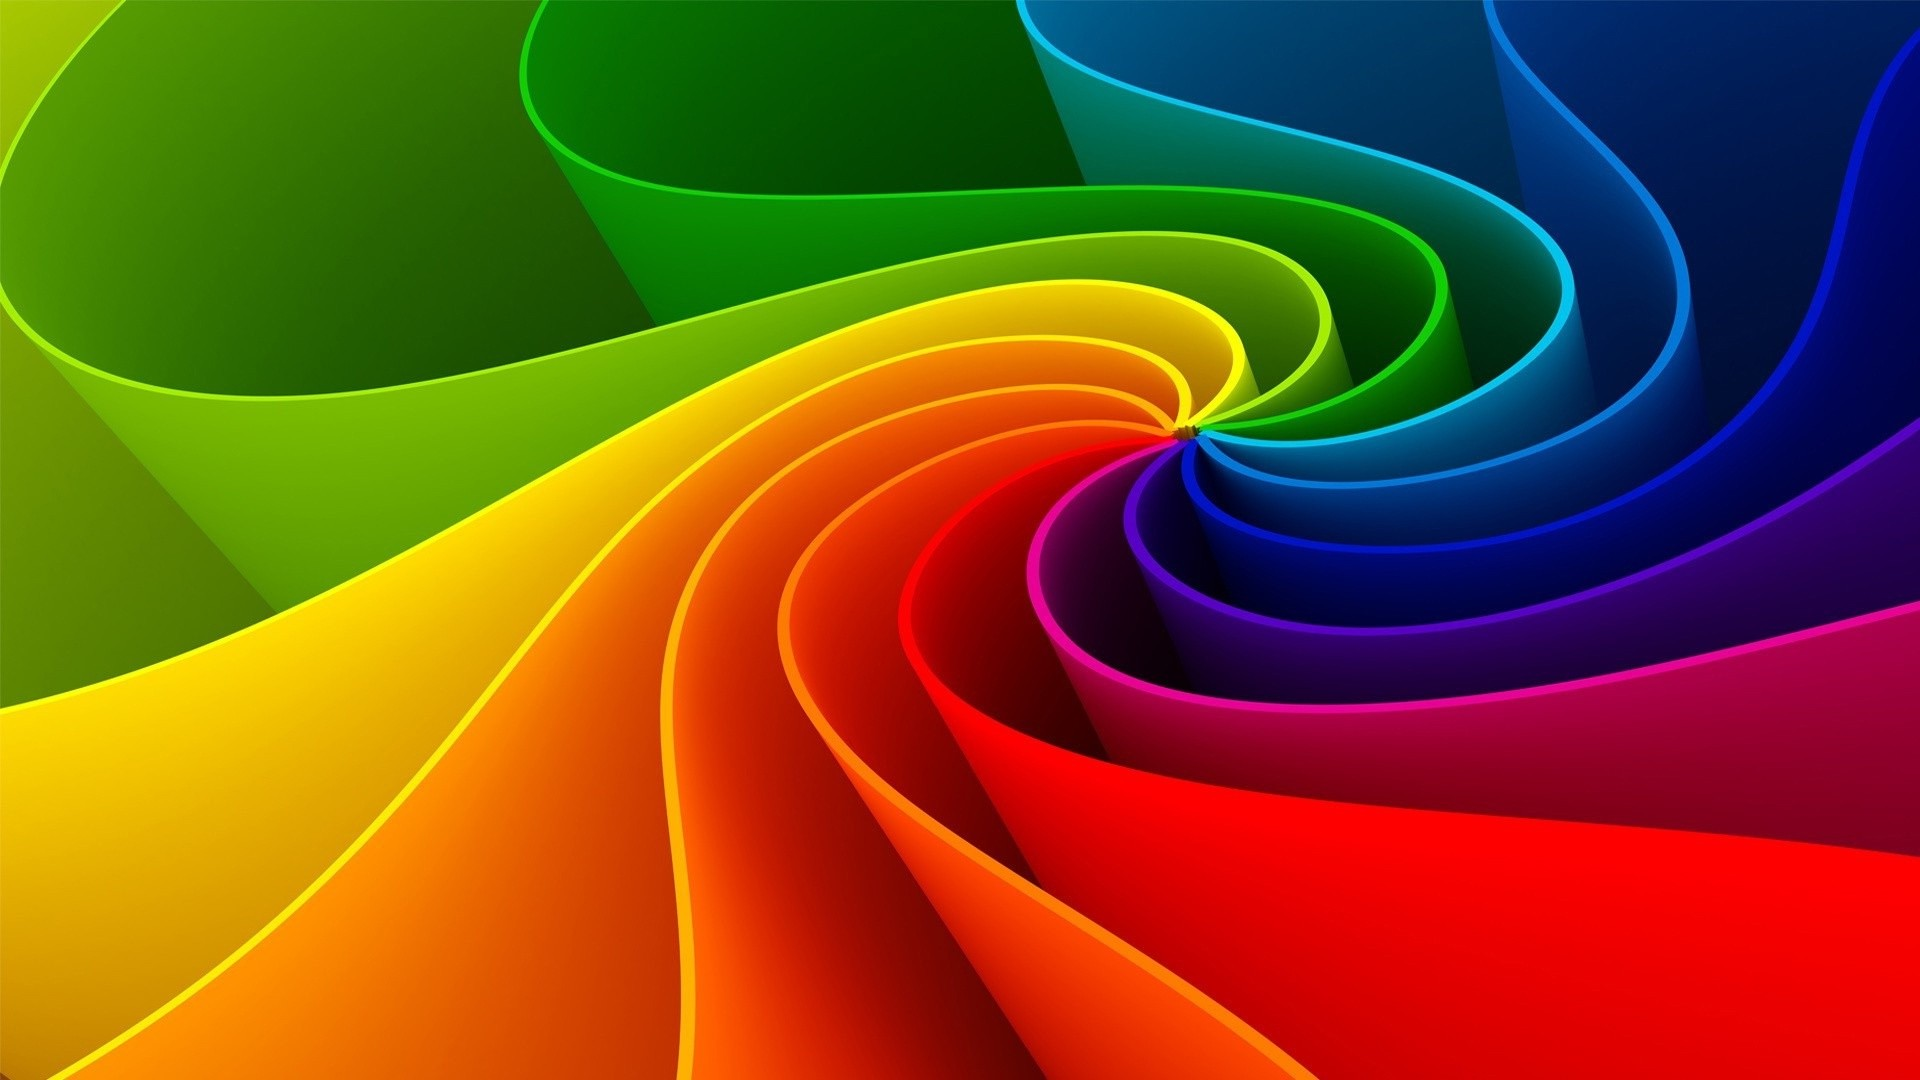 50] 3D Wallpapers for Tablet on WallpaperSafari 1920x1080